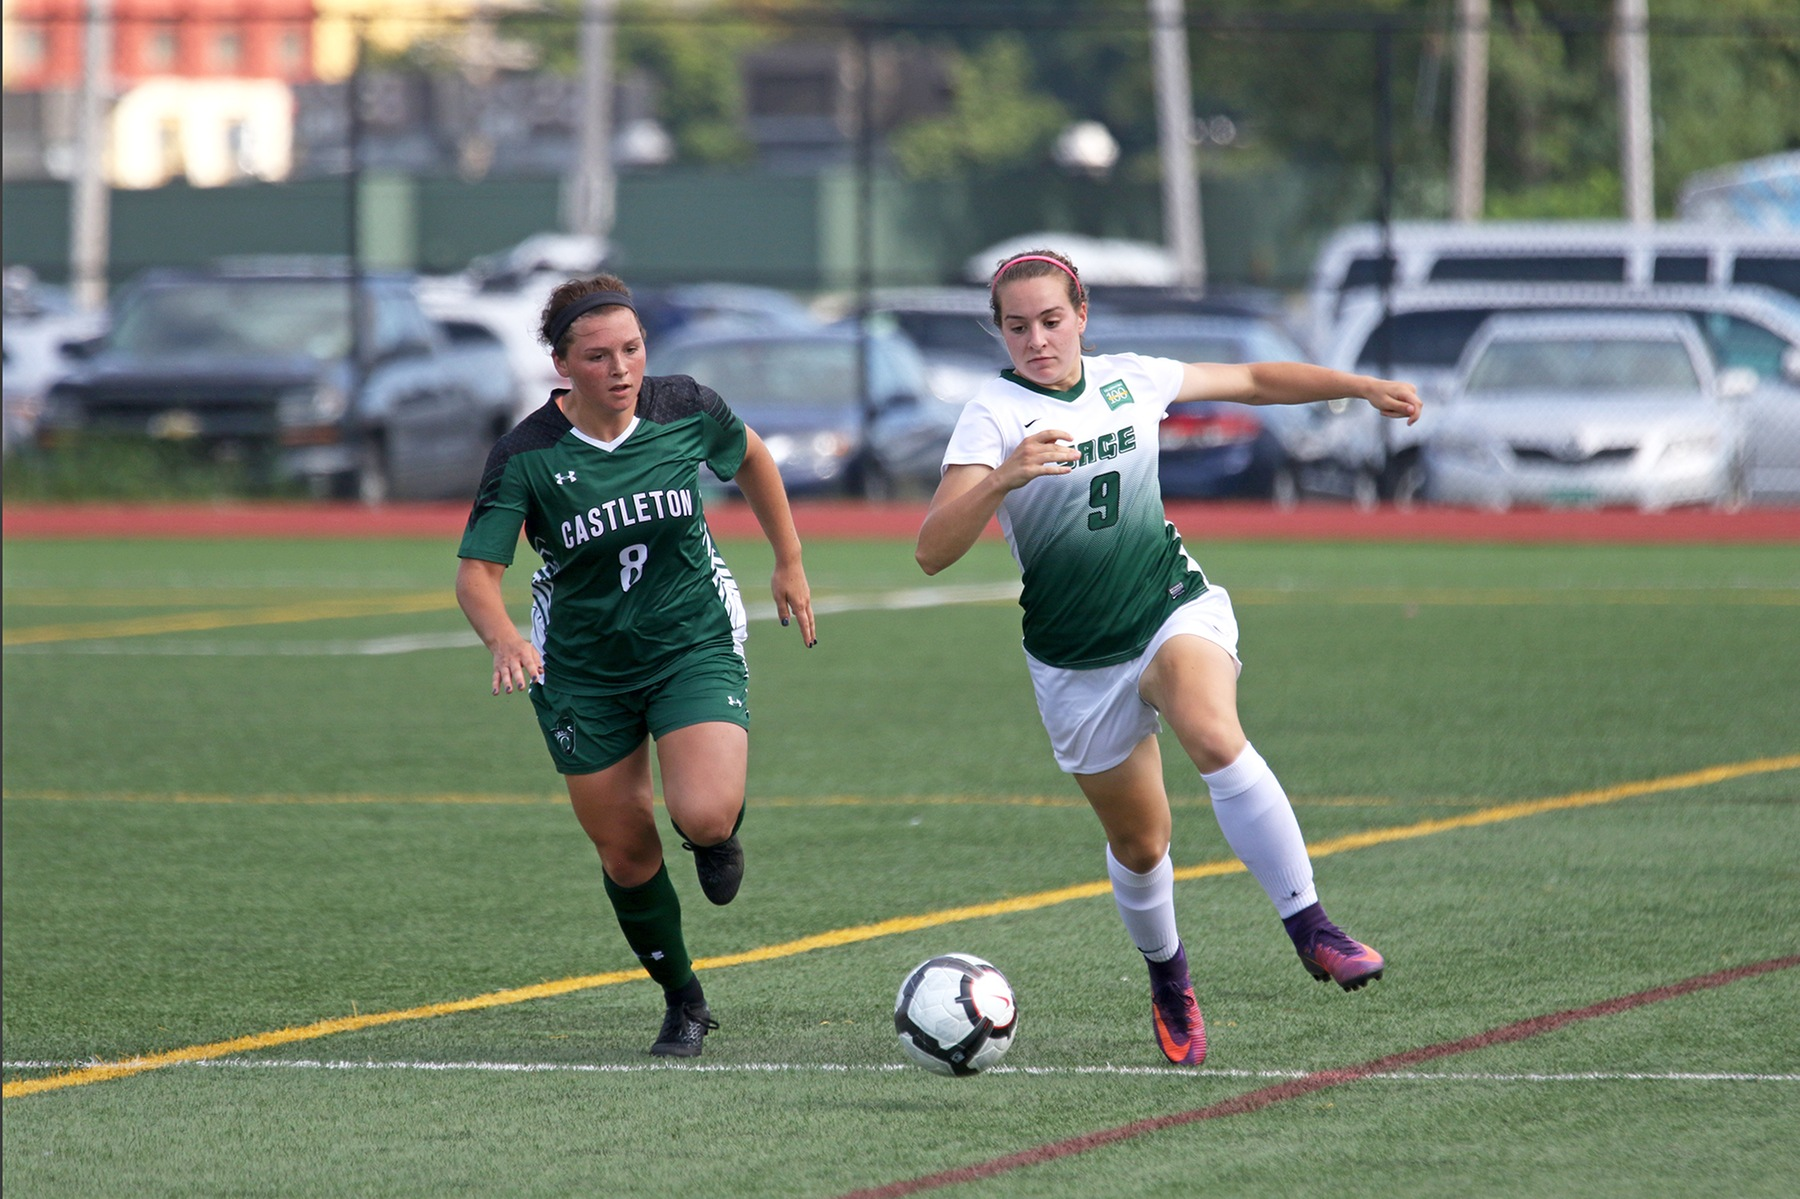 Fesette leads Sage to 4-0 start with 1-0 win over MCLA